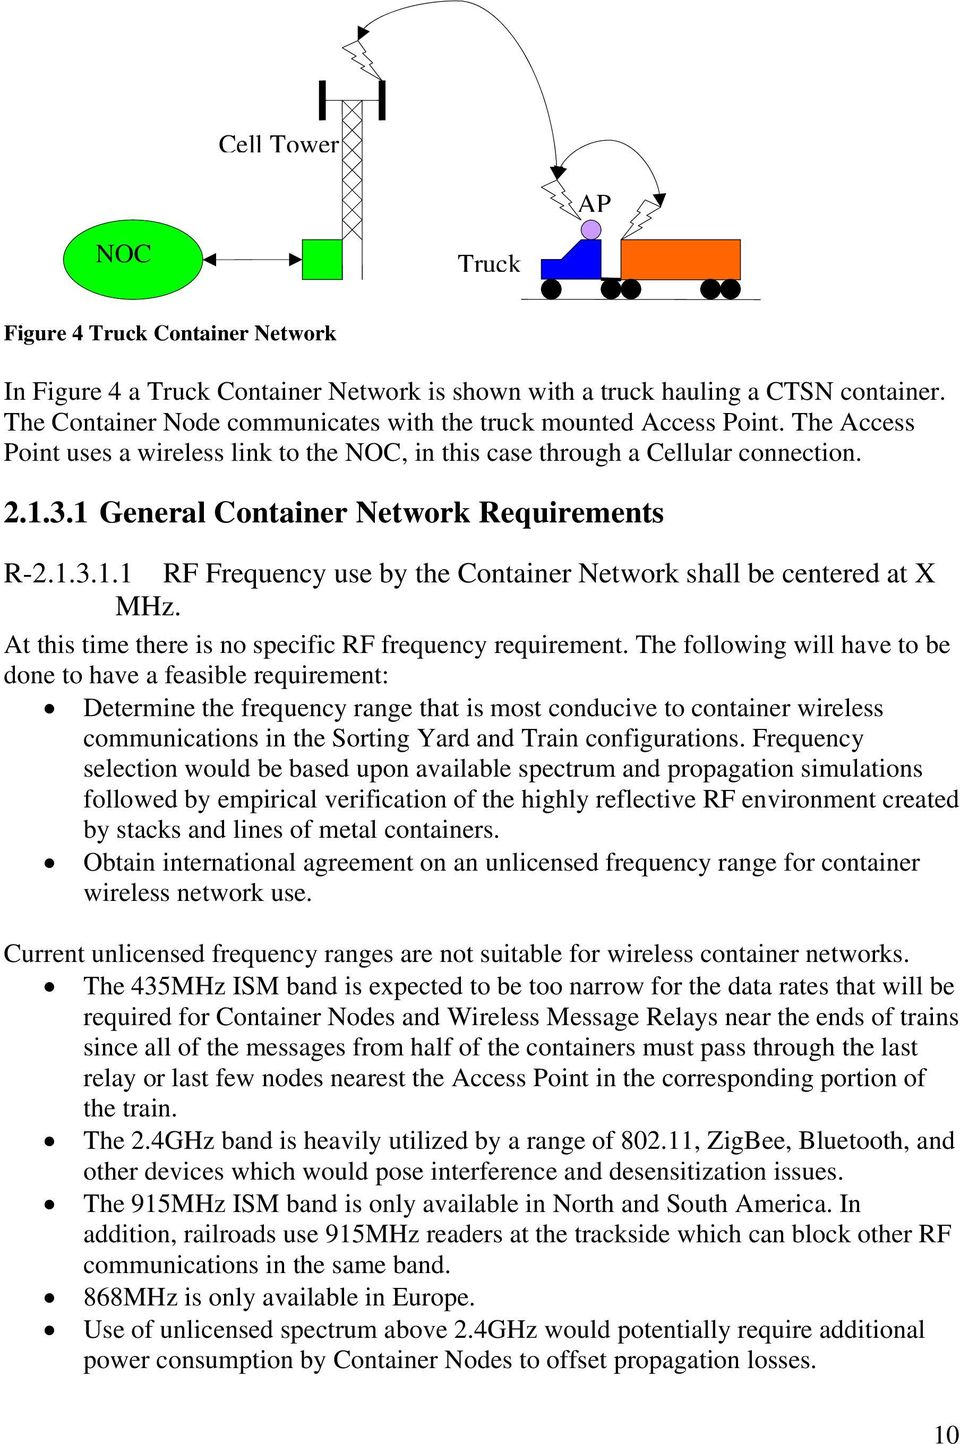 1 General Container Network Requirements R-2.1.3.1.1 RF Frequency use by the Container Network shall be centered at X MHz. At this time there is no specific RF frequency requirement.